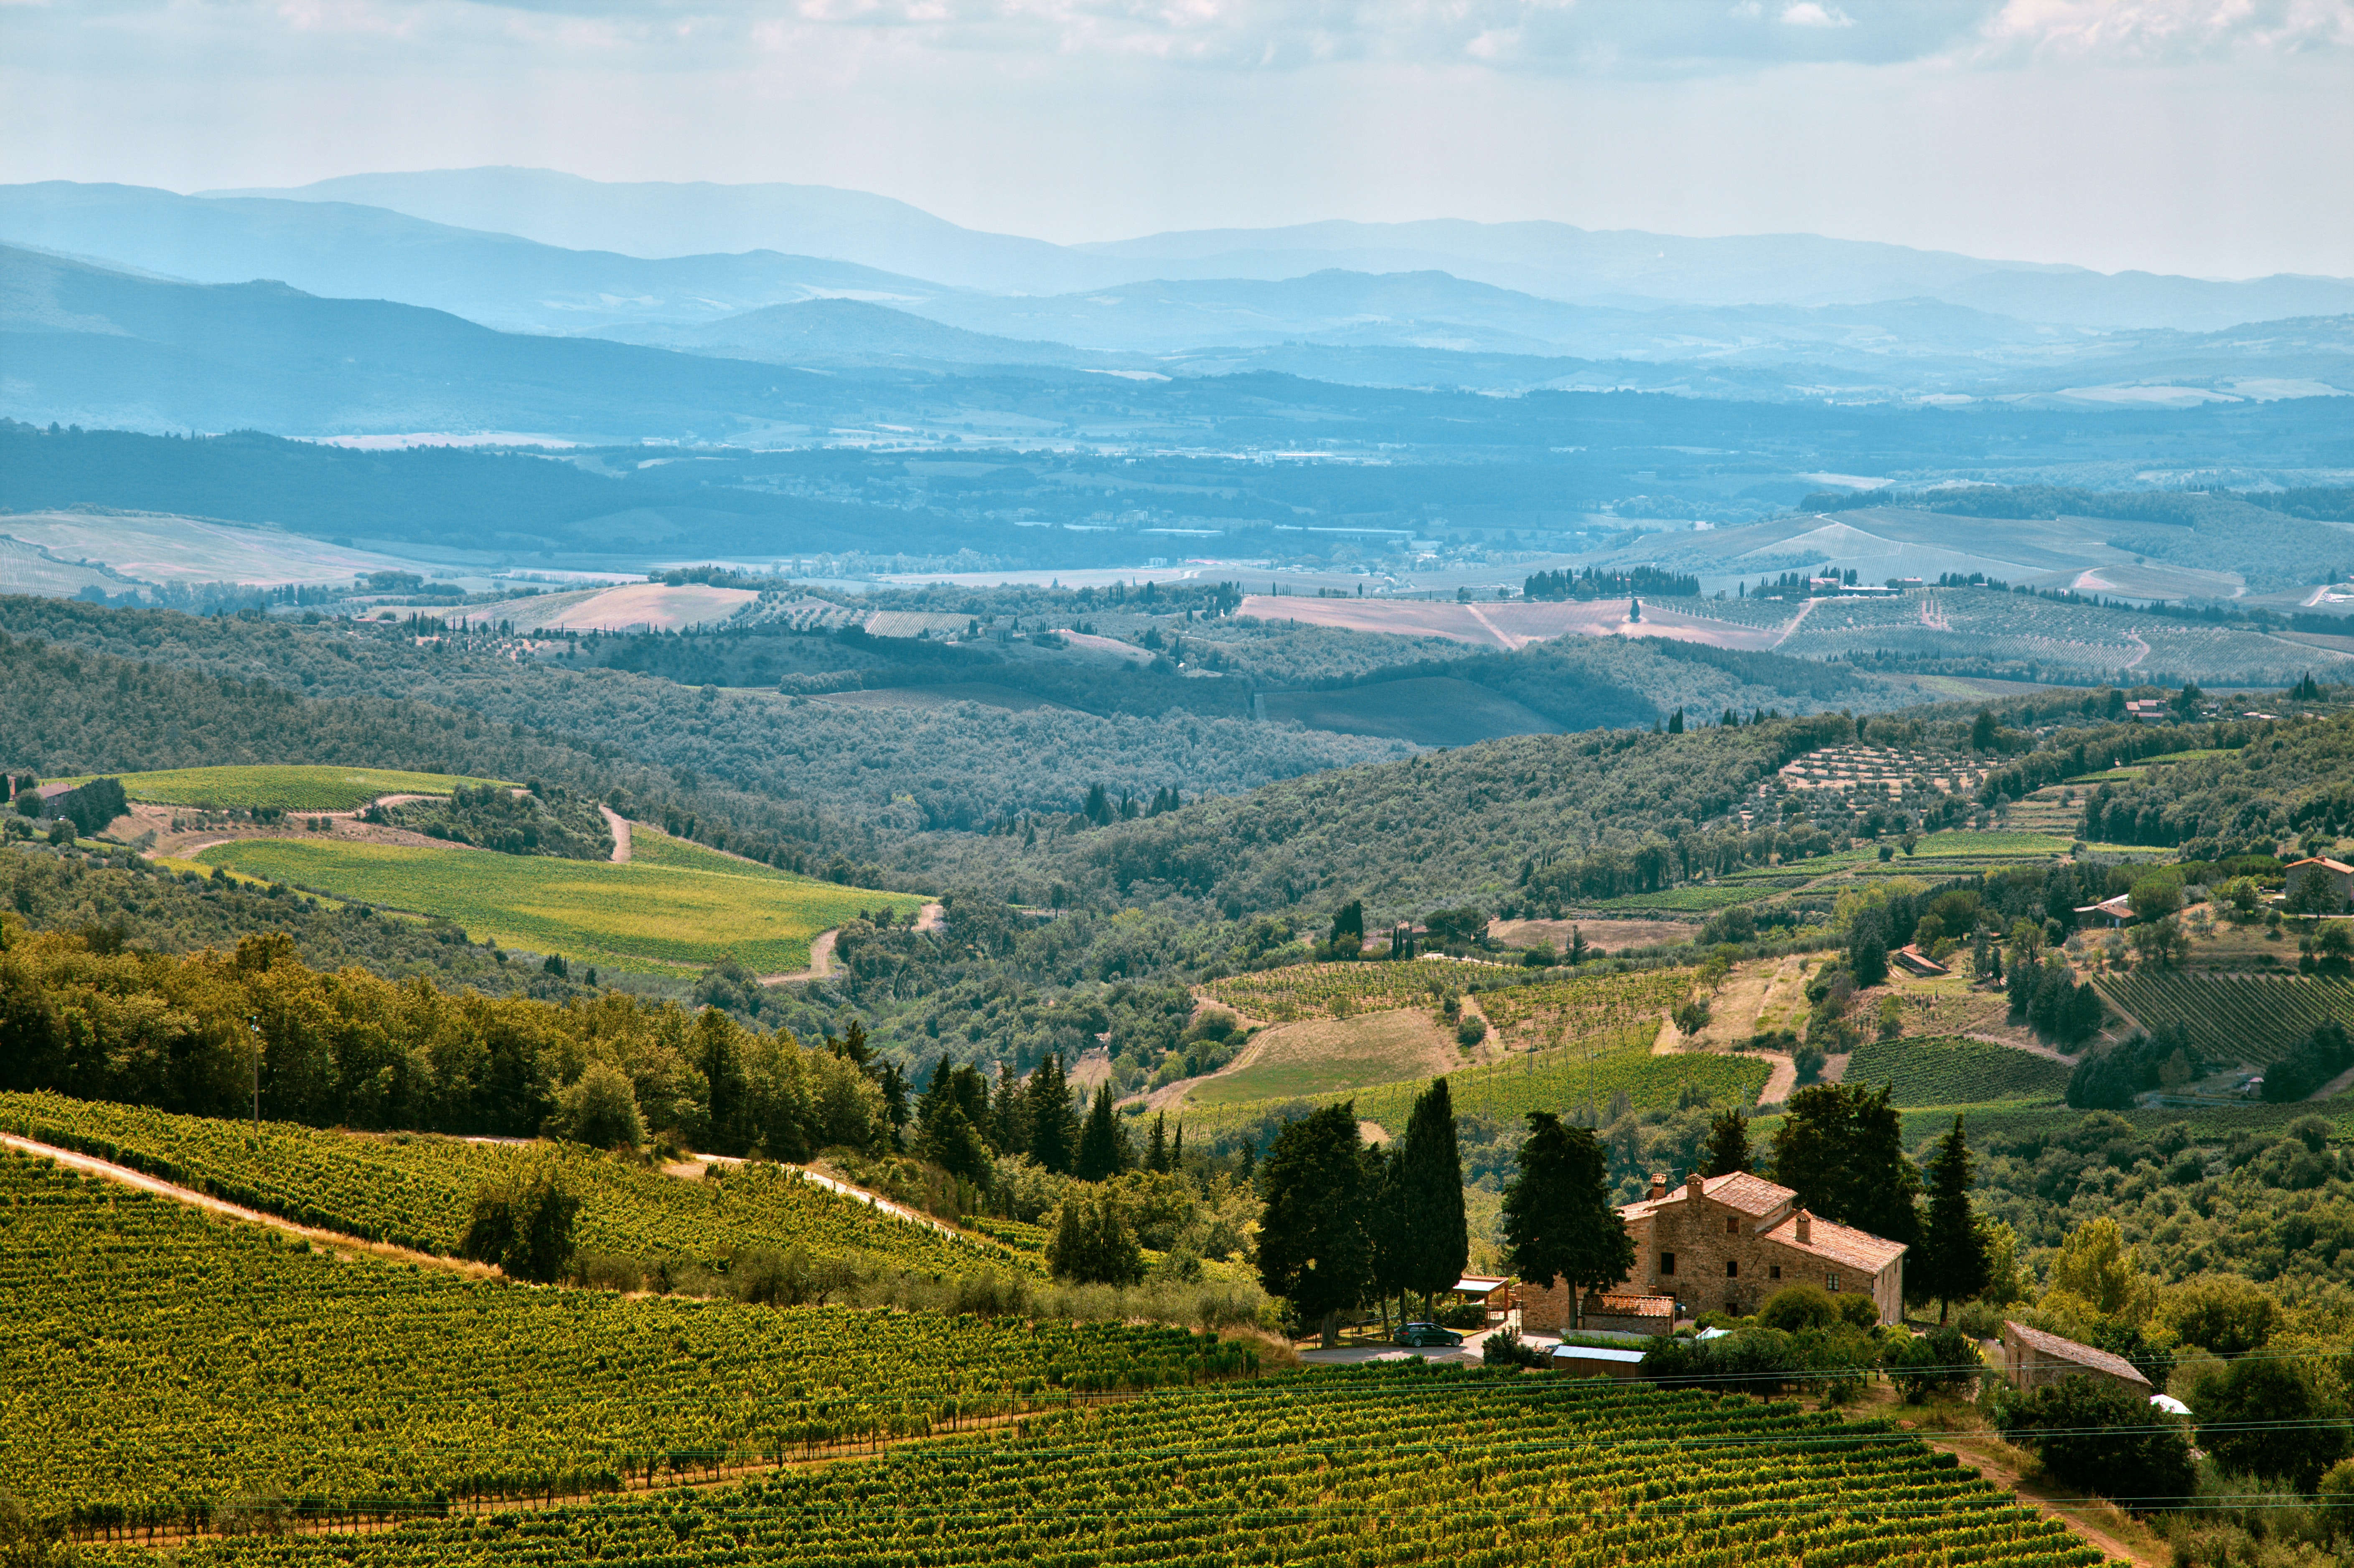 A panoramic shot of a vineyard estate overlooking hills in the distance.